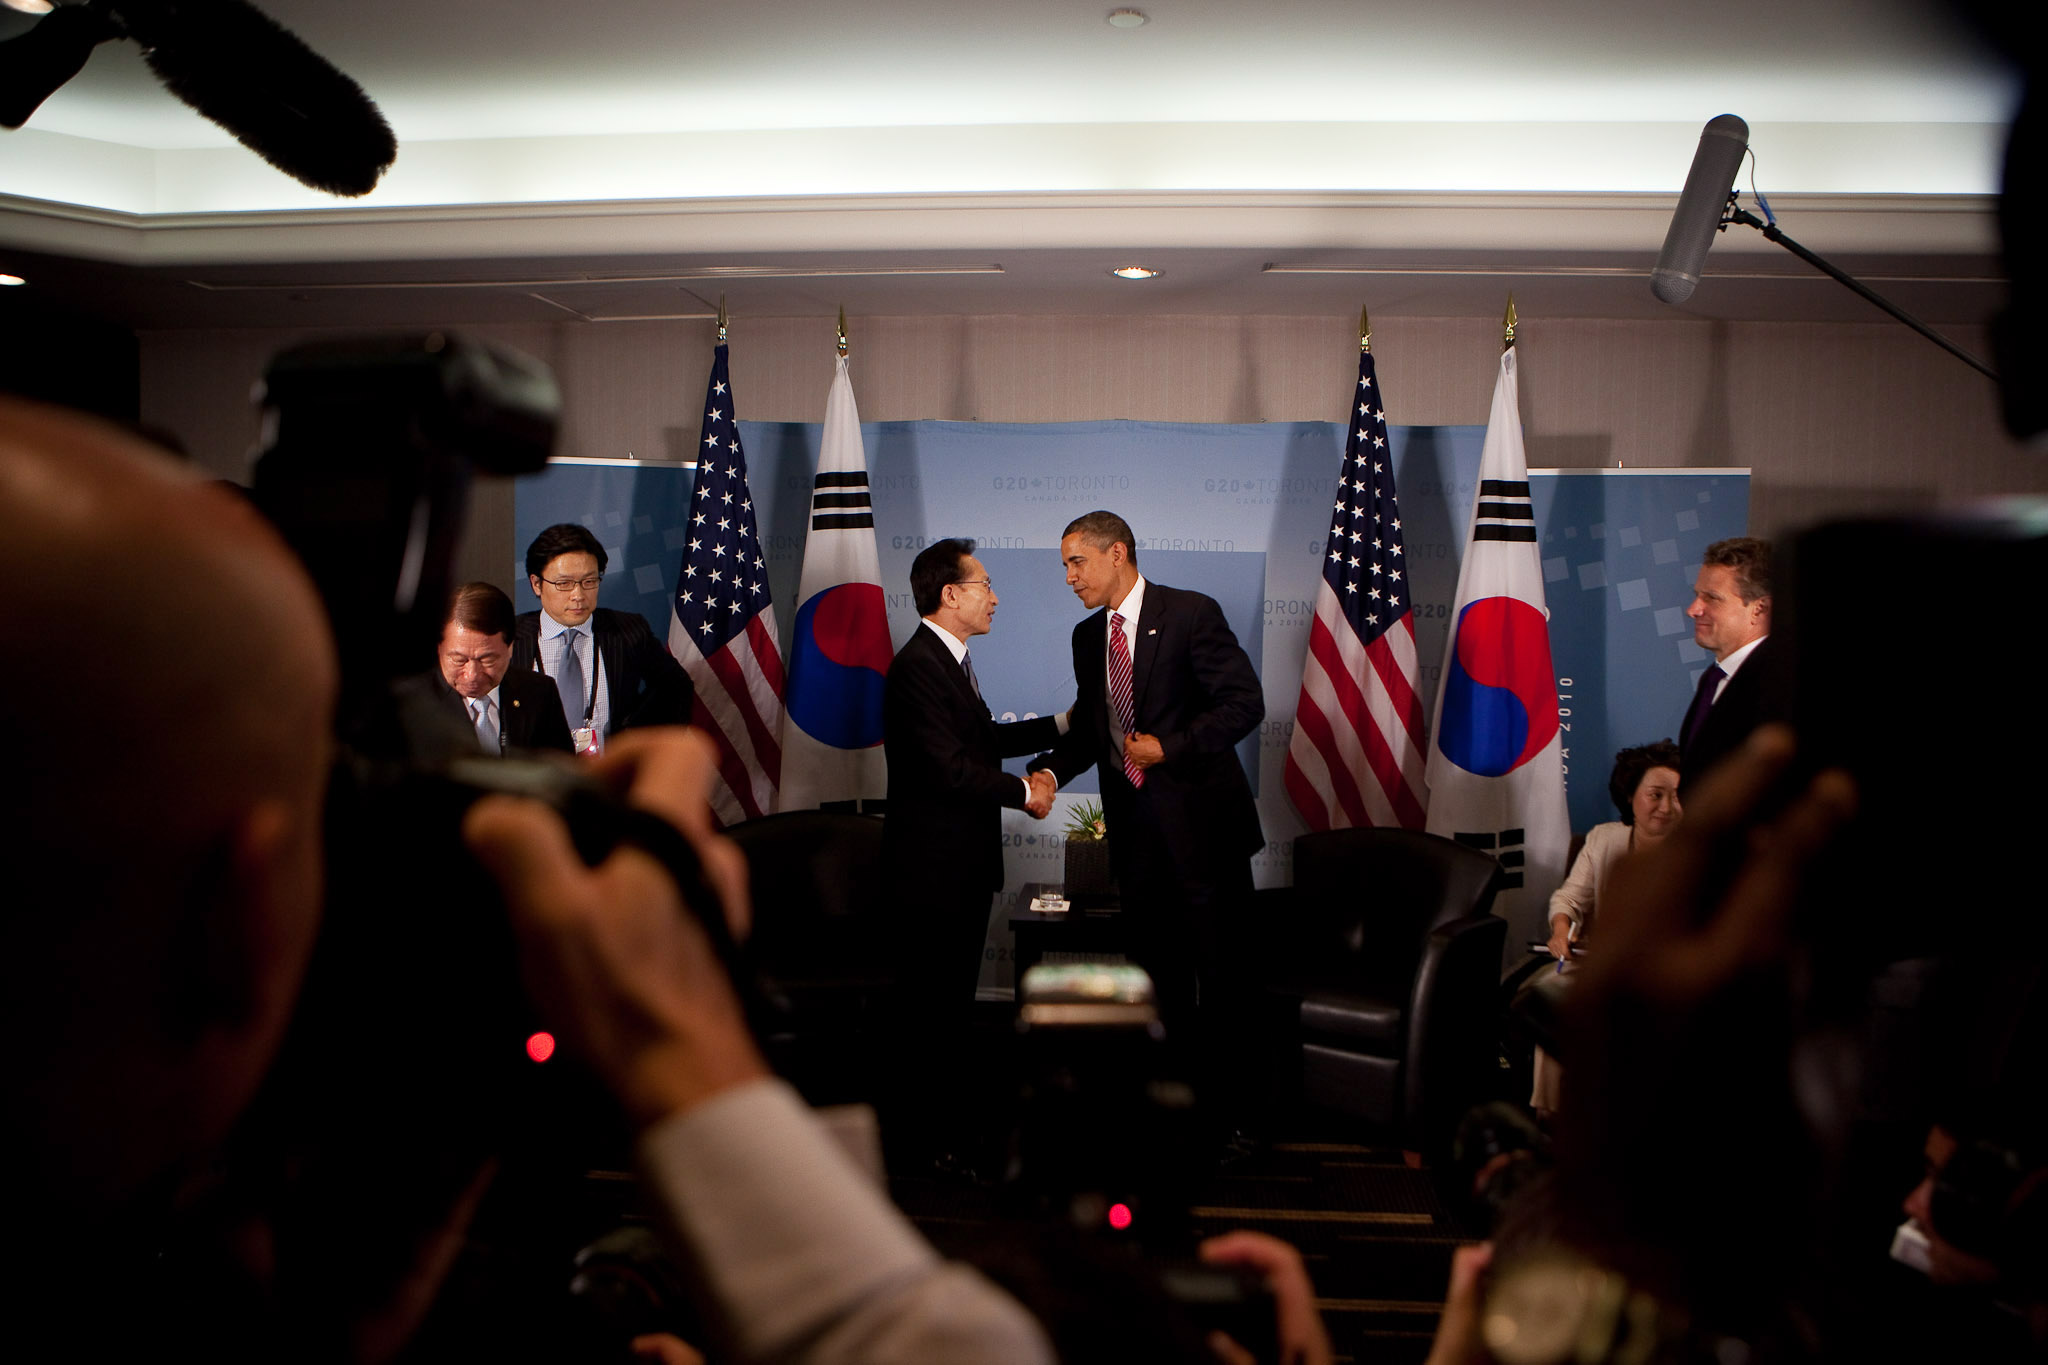 President Barack Obama Shakes Hands with President Lee Myung-Bak of the Republic of Korea at G20 Summit